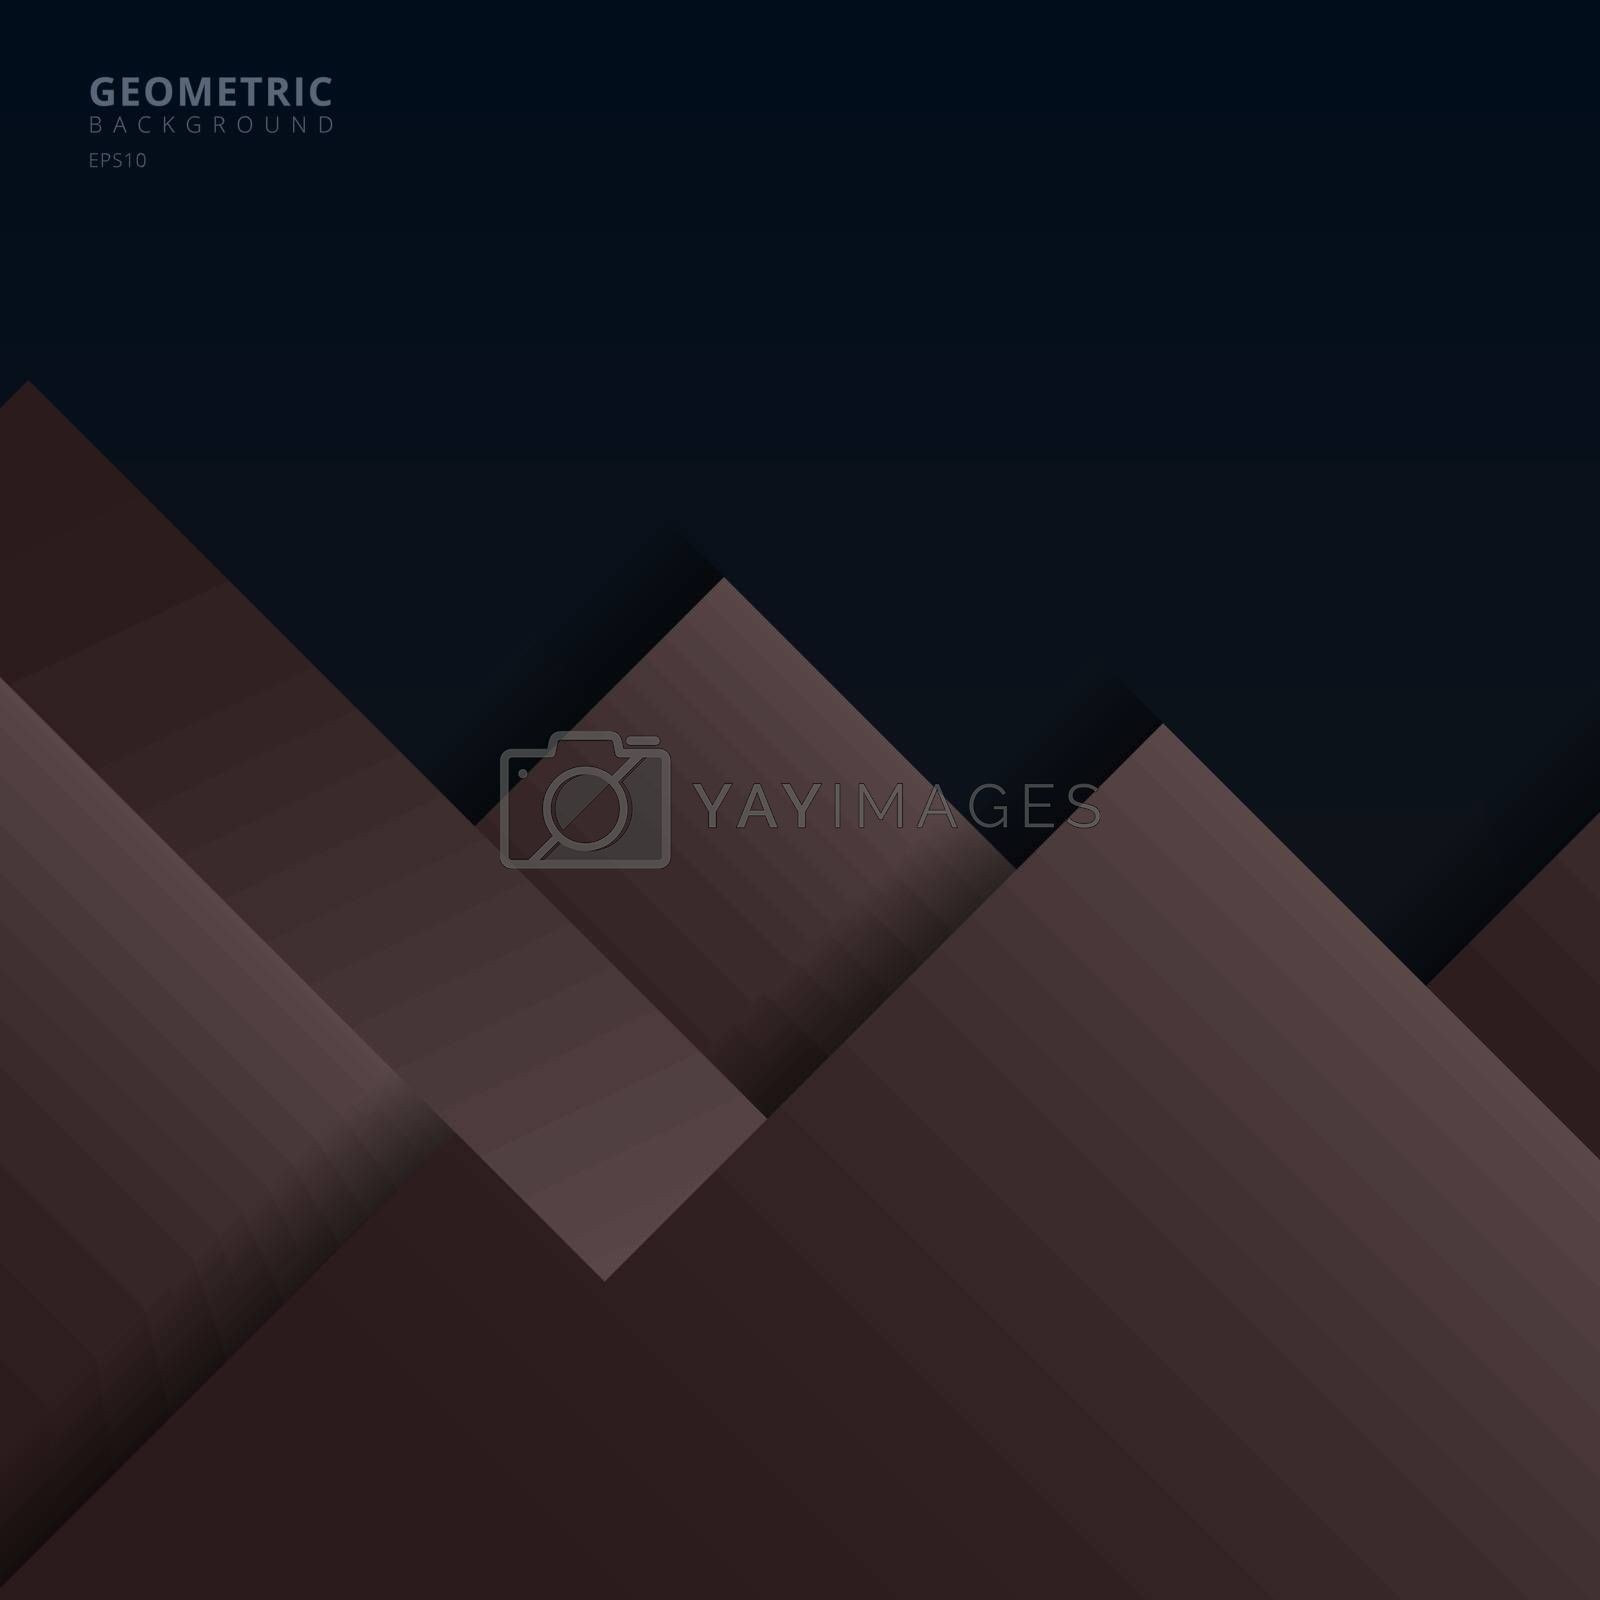 Abstract background brown and dark blue geometric square overlapping with shadow paper style. Vector illustration